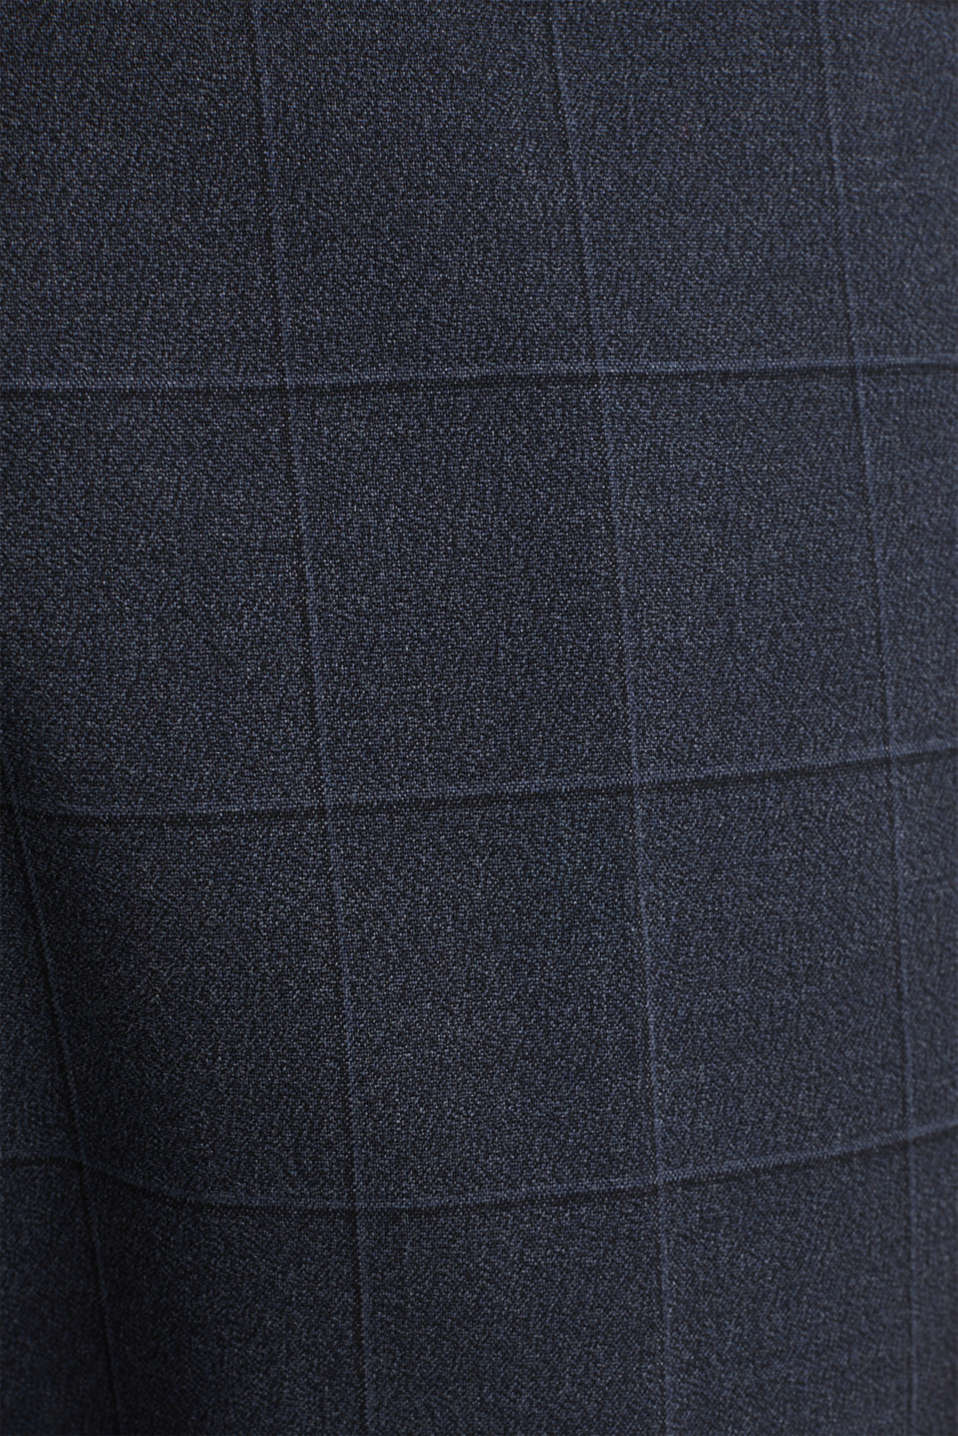 WINDOW CHECK mix + match trousers with stretch, DARK BLUE 3, detail image number 4